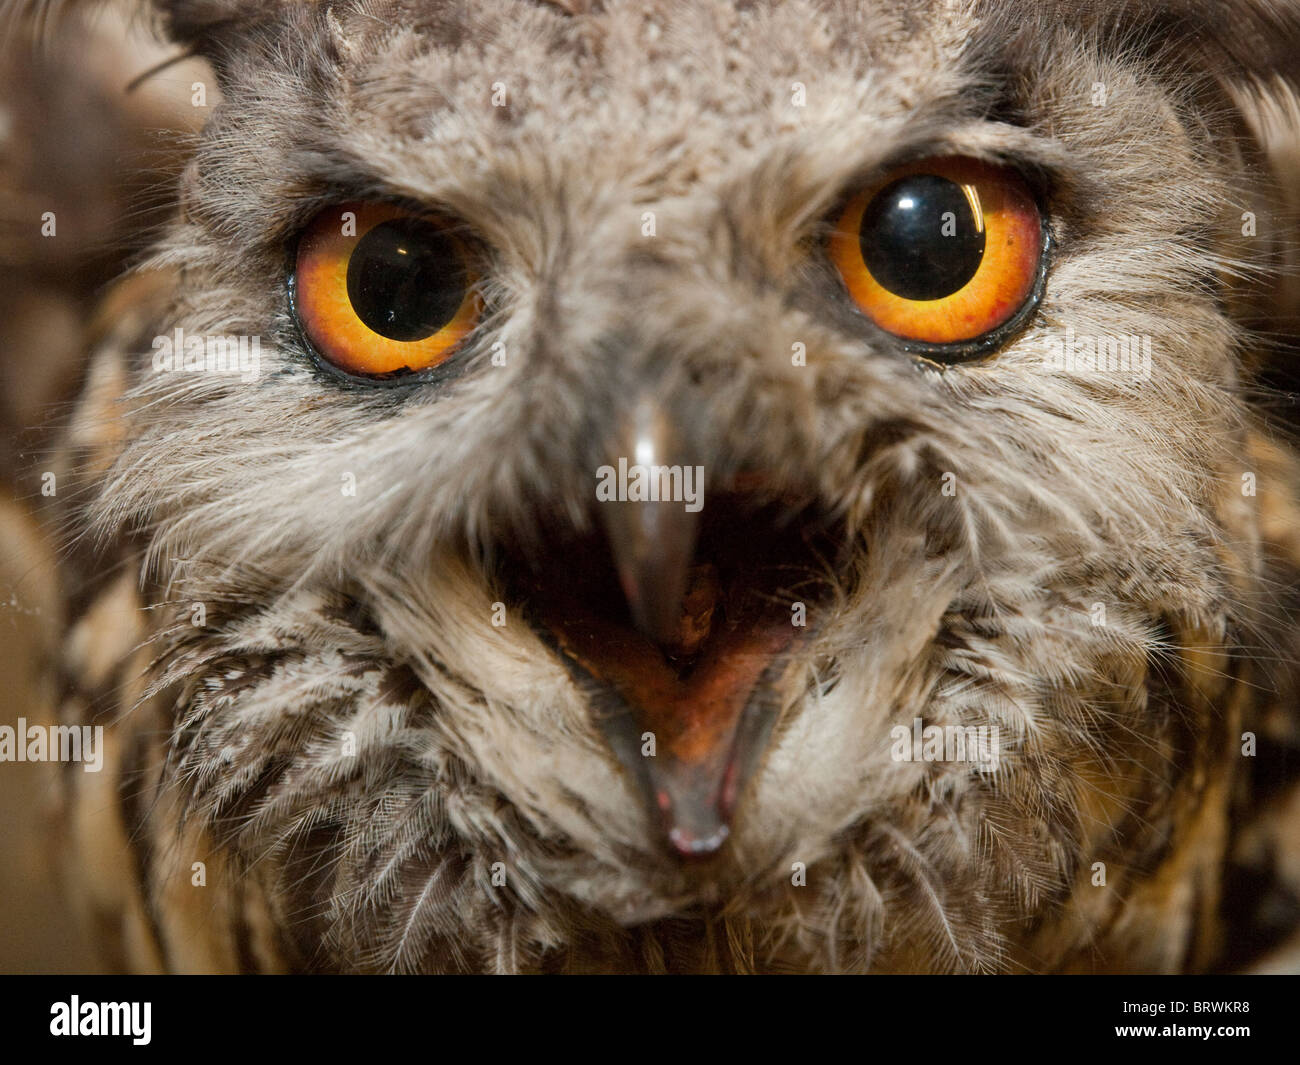 Stuff Owl Taxidermy Owl Stock Photos And Taxidermy Owl Stock Images